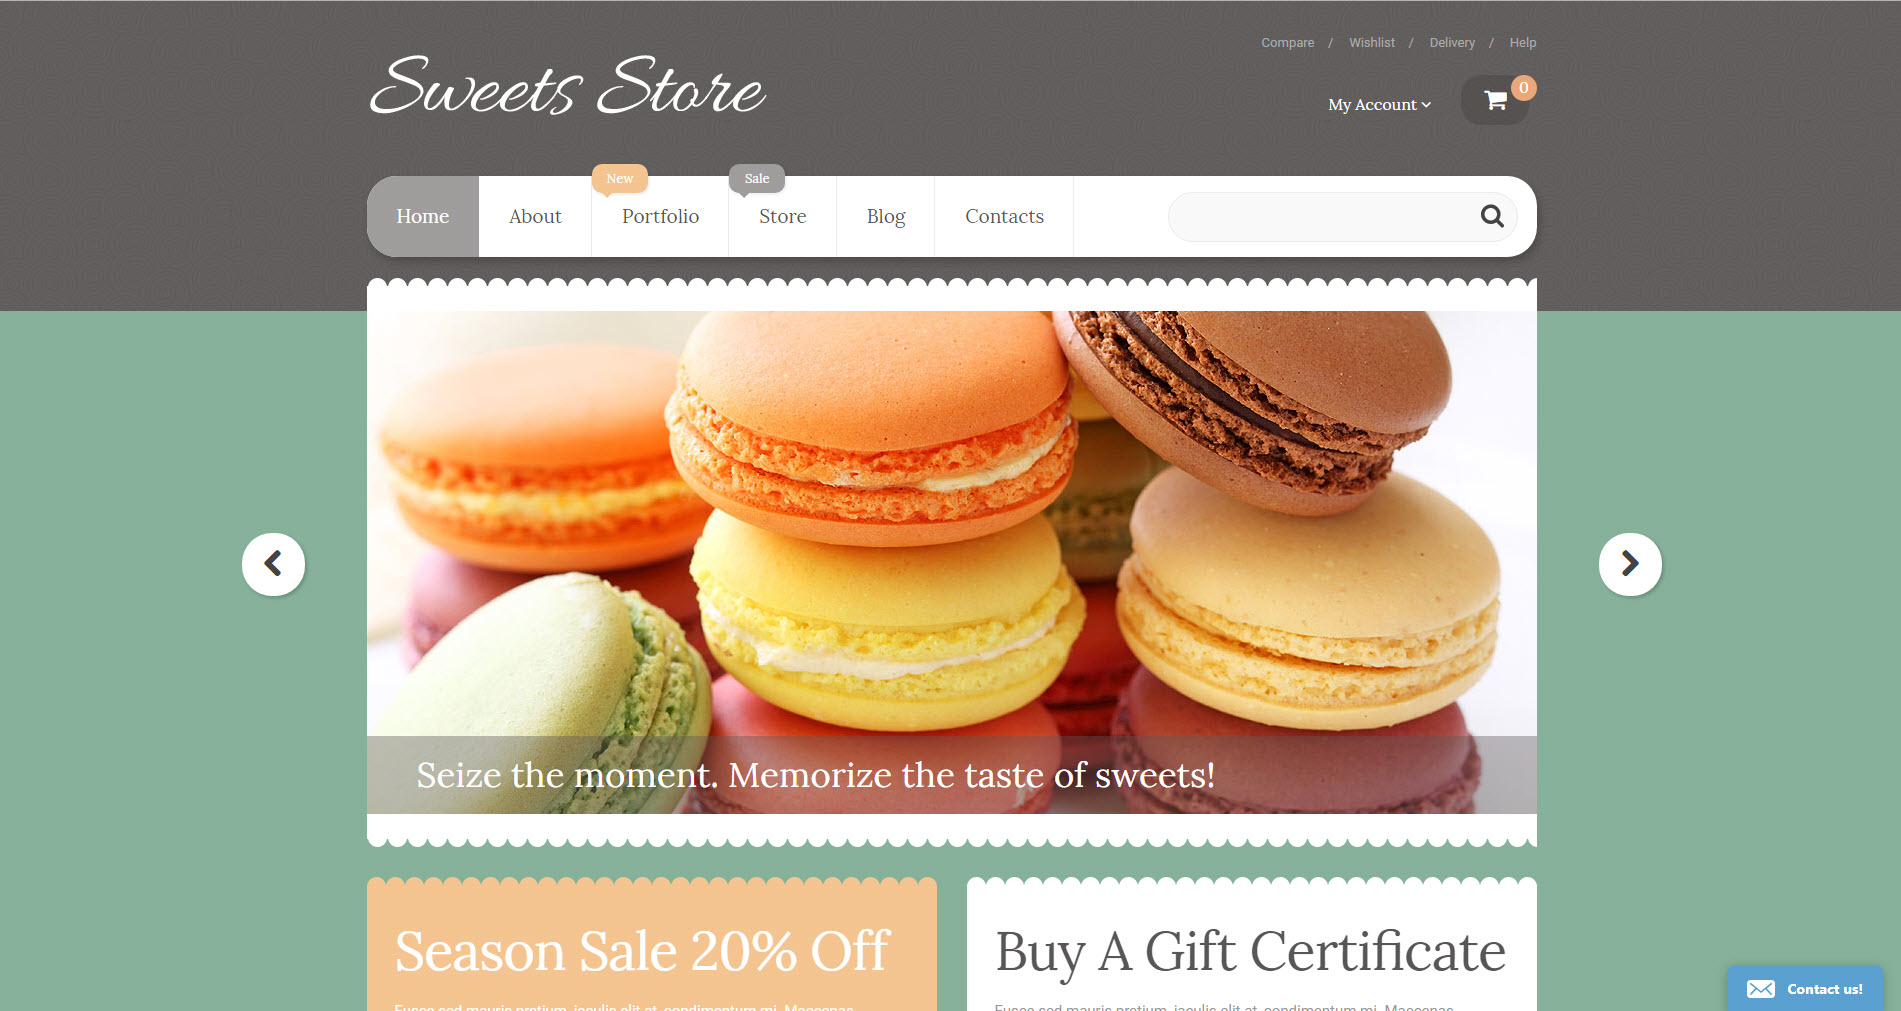 Confectionery and sweets online drop shipping website business for sale